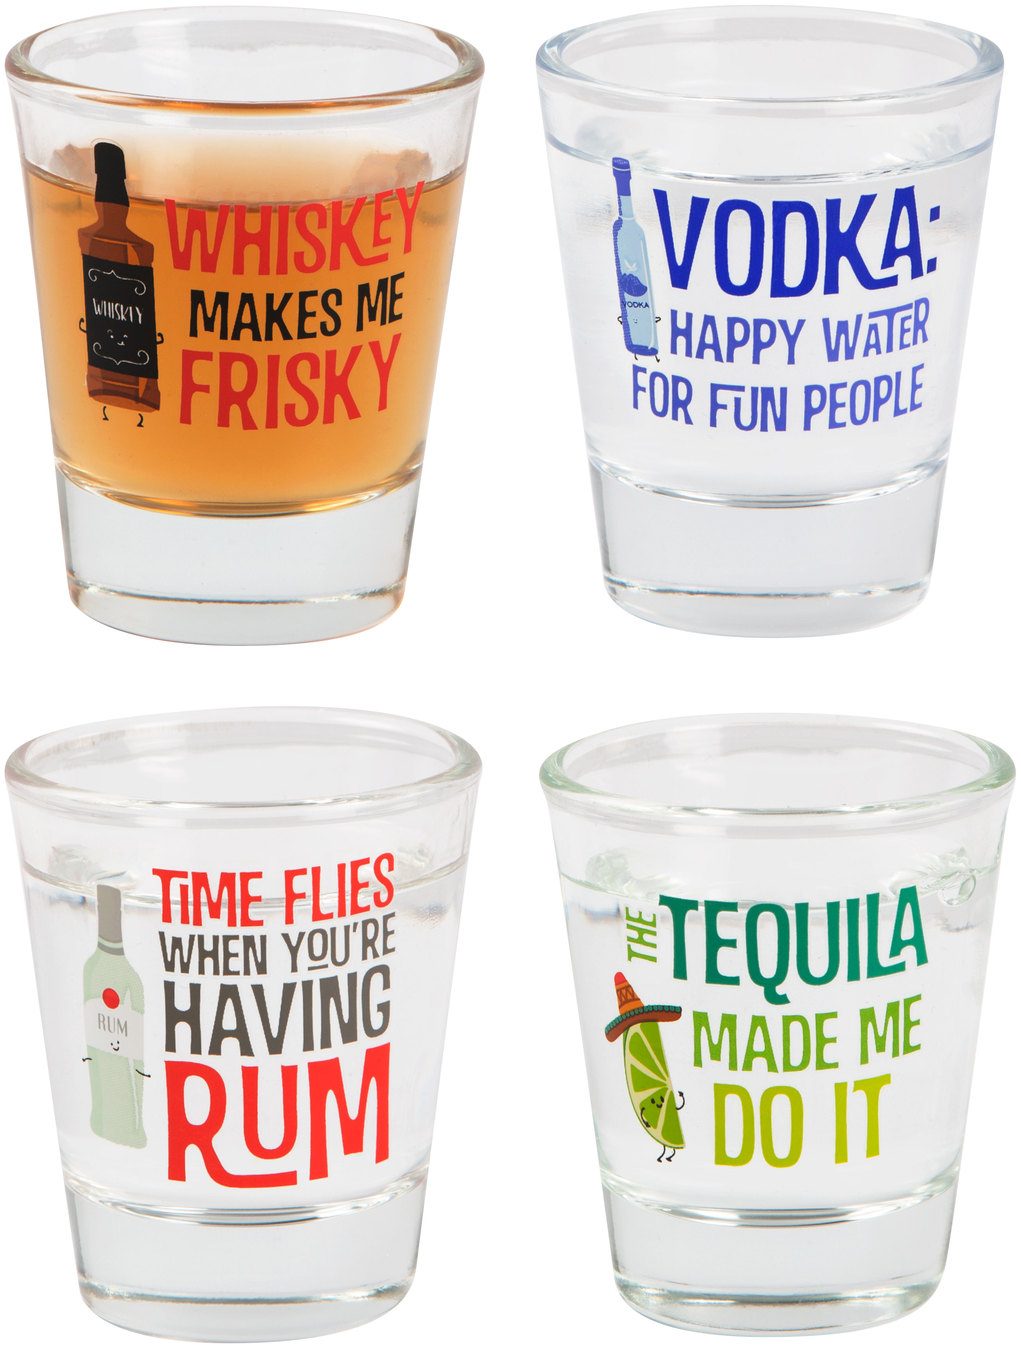 Shots! by Late Night Last Call - Shots! - 1.75 oz. Decorative Shot Glasses (Set of 4)